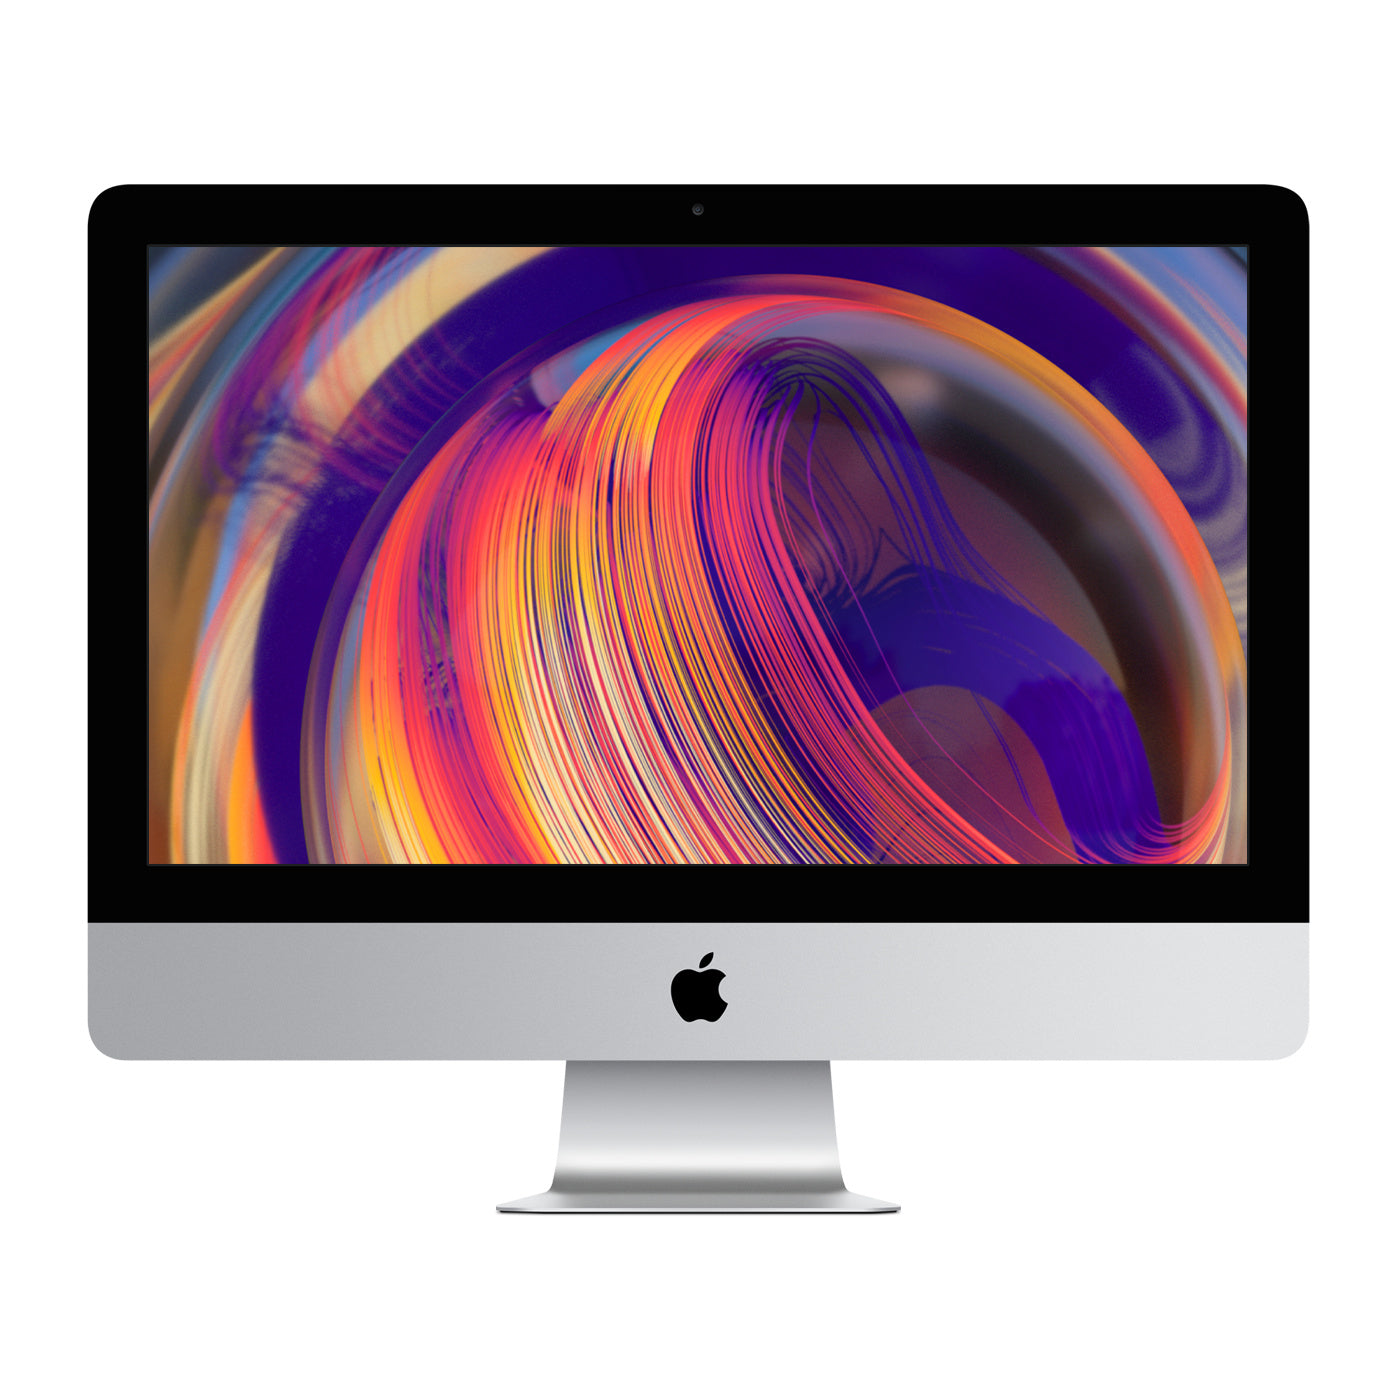 Used (Like New) Apple IMac (2019) 21.5'' Retina 4K Display, Intel Core I5-8500 6-Cores CPU, 8GB RAM, Radeon Pro 560X 4GB GPU, 1TB Fusion Drive, with Apple Mouse & keyboard and all Accessories